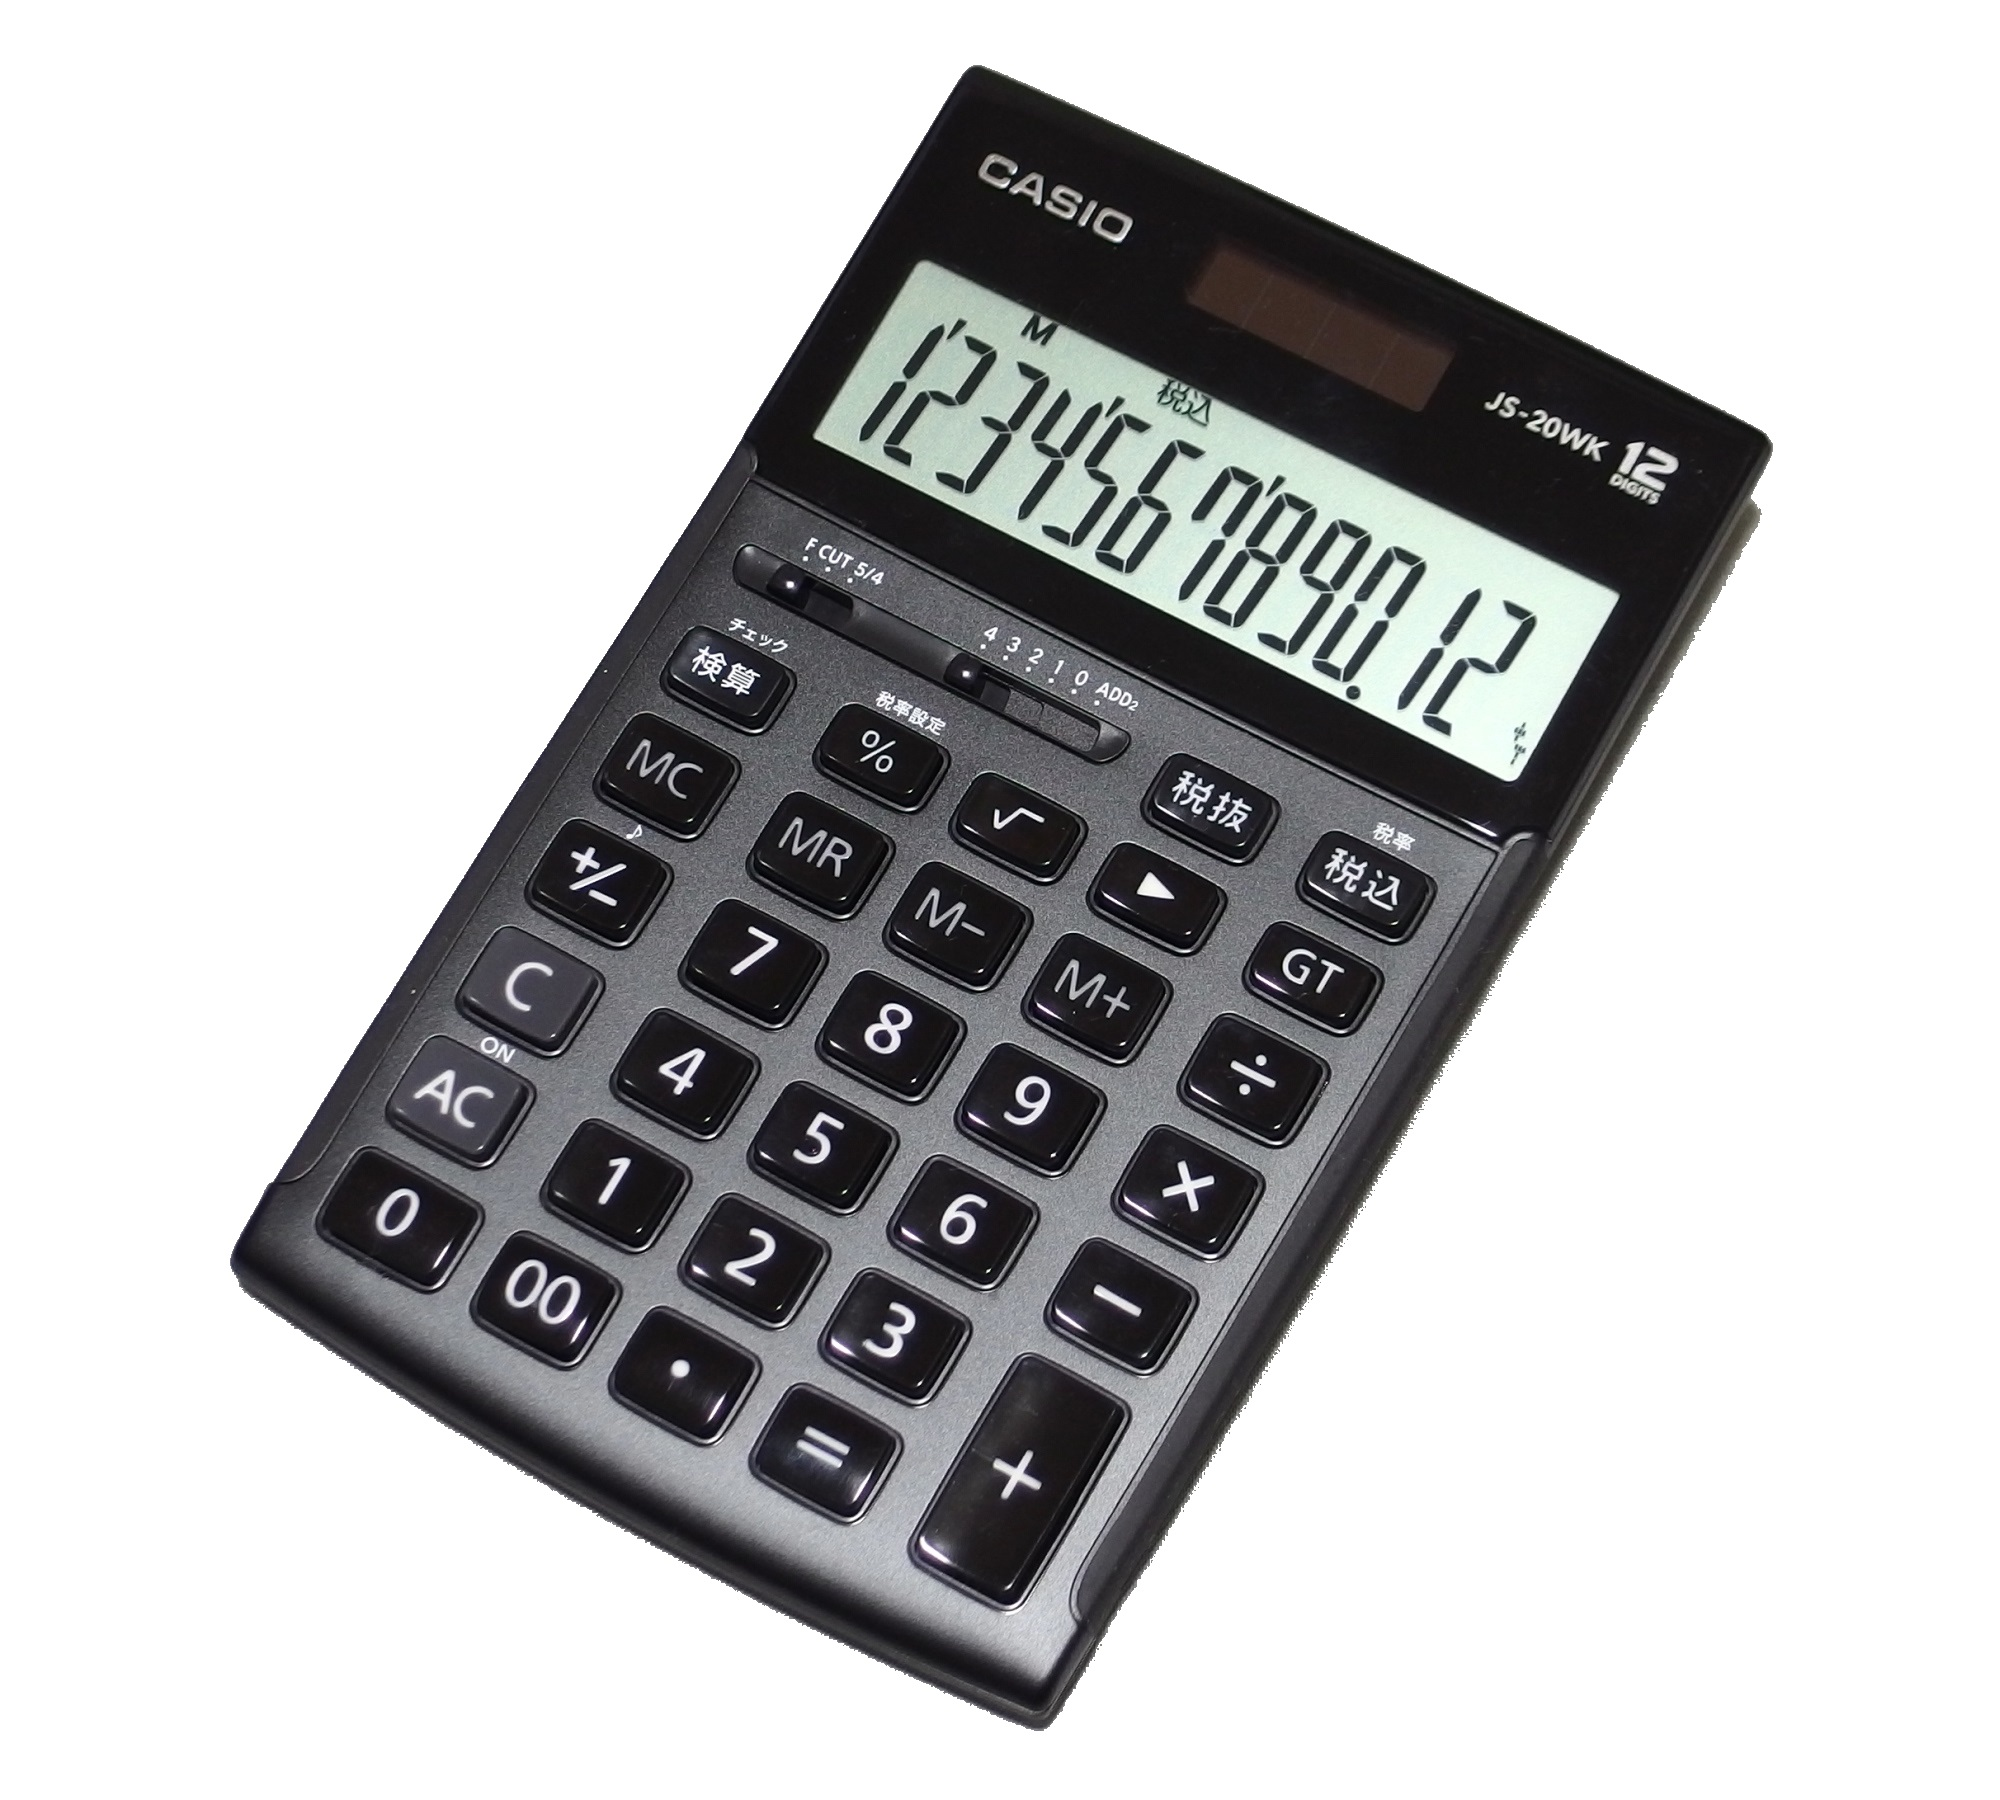 CASIO 35+ PILOTE CALCULATRICE TÉLÉCHARGER GRAPH